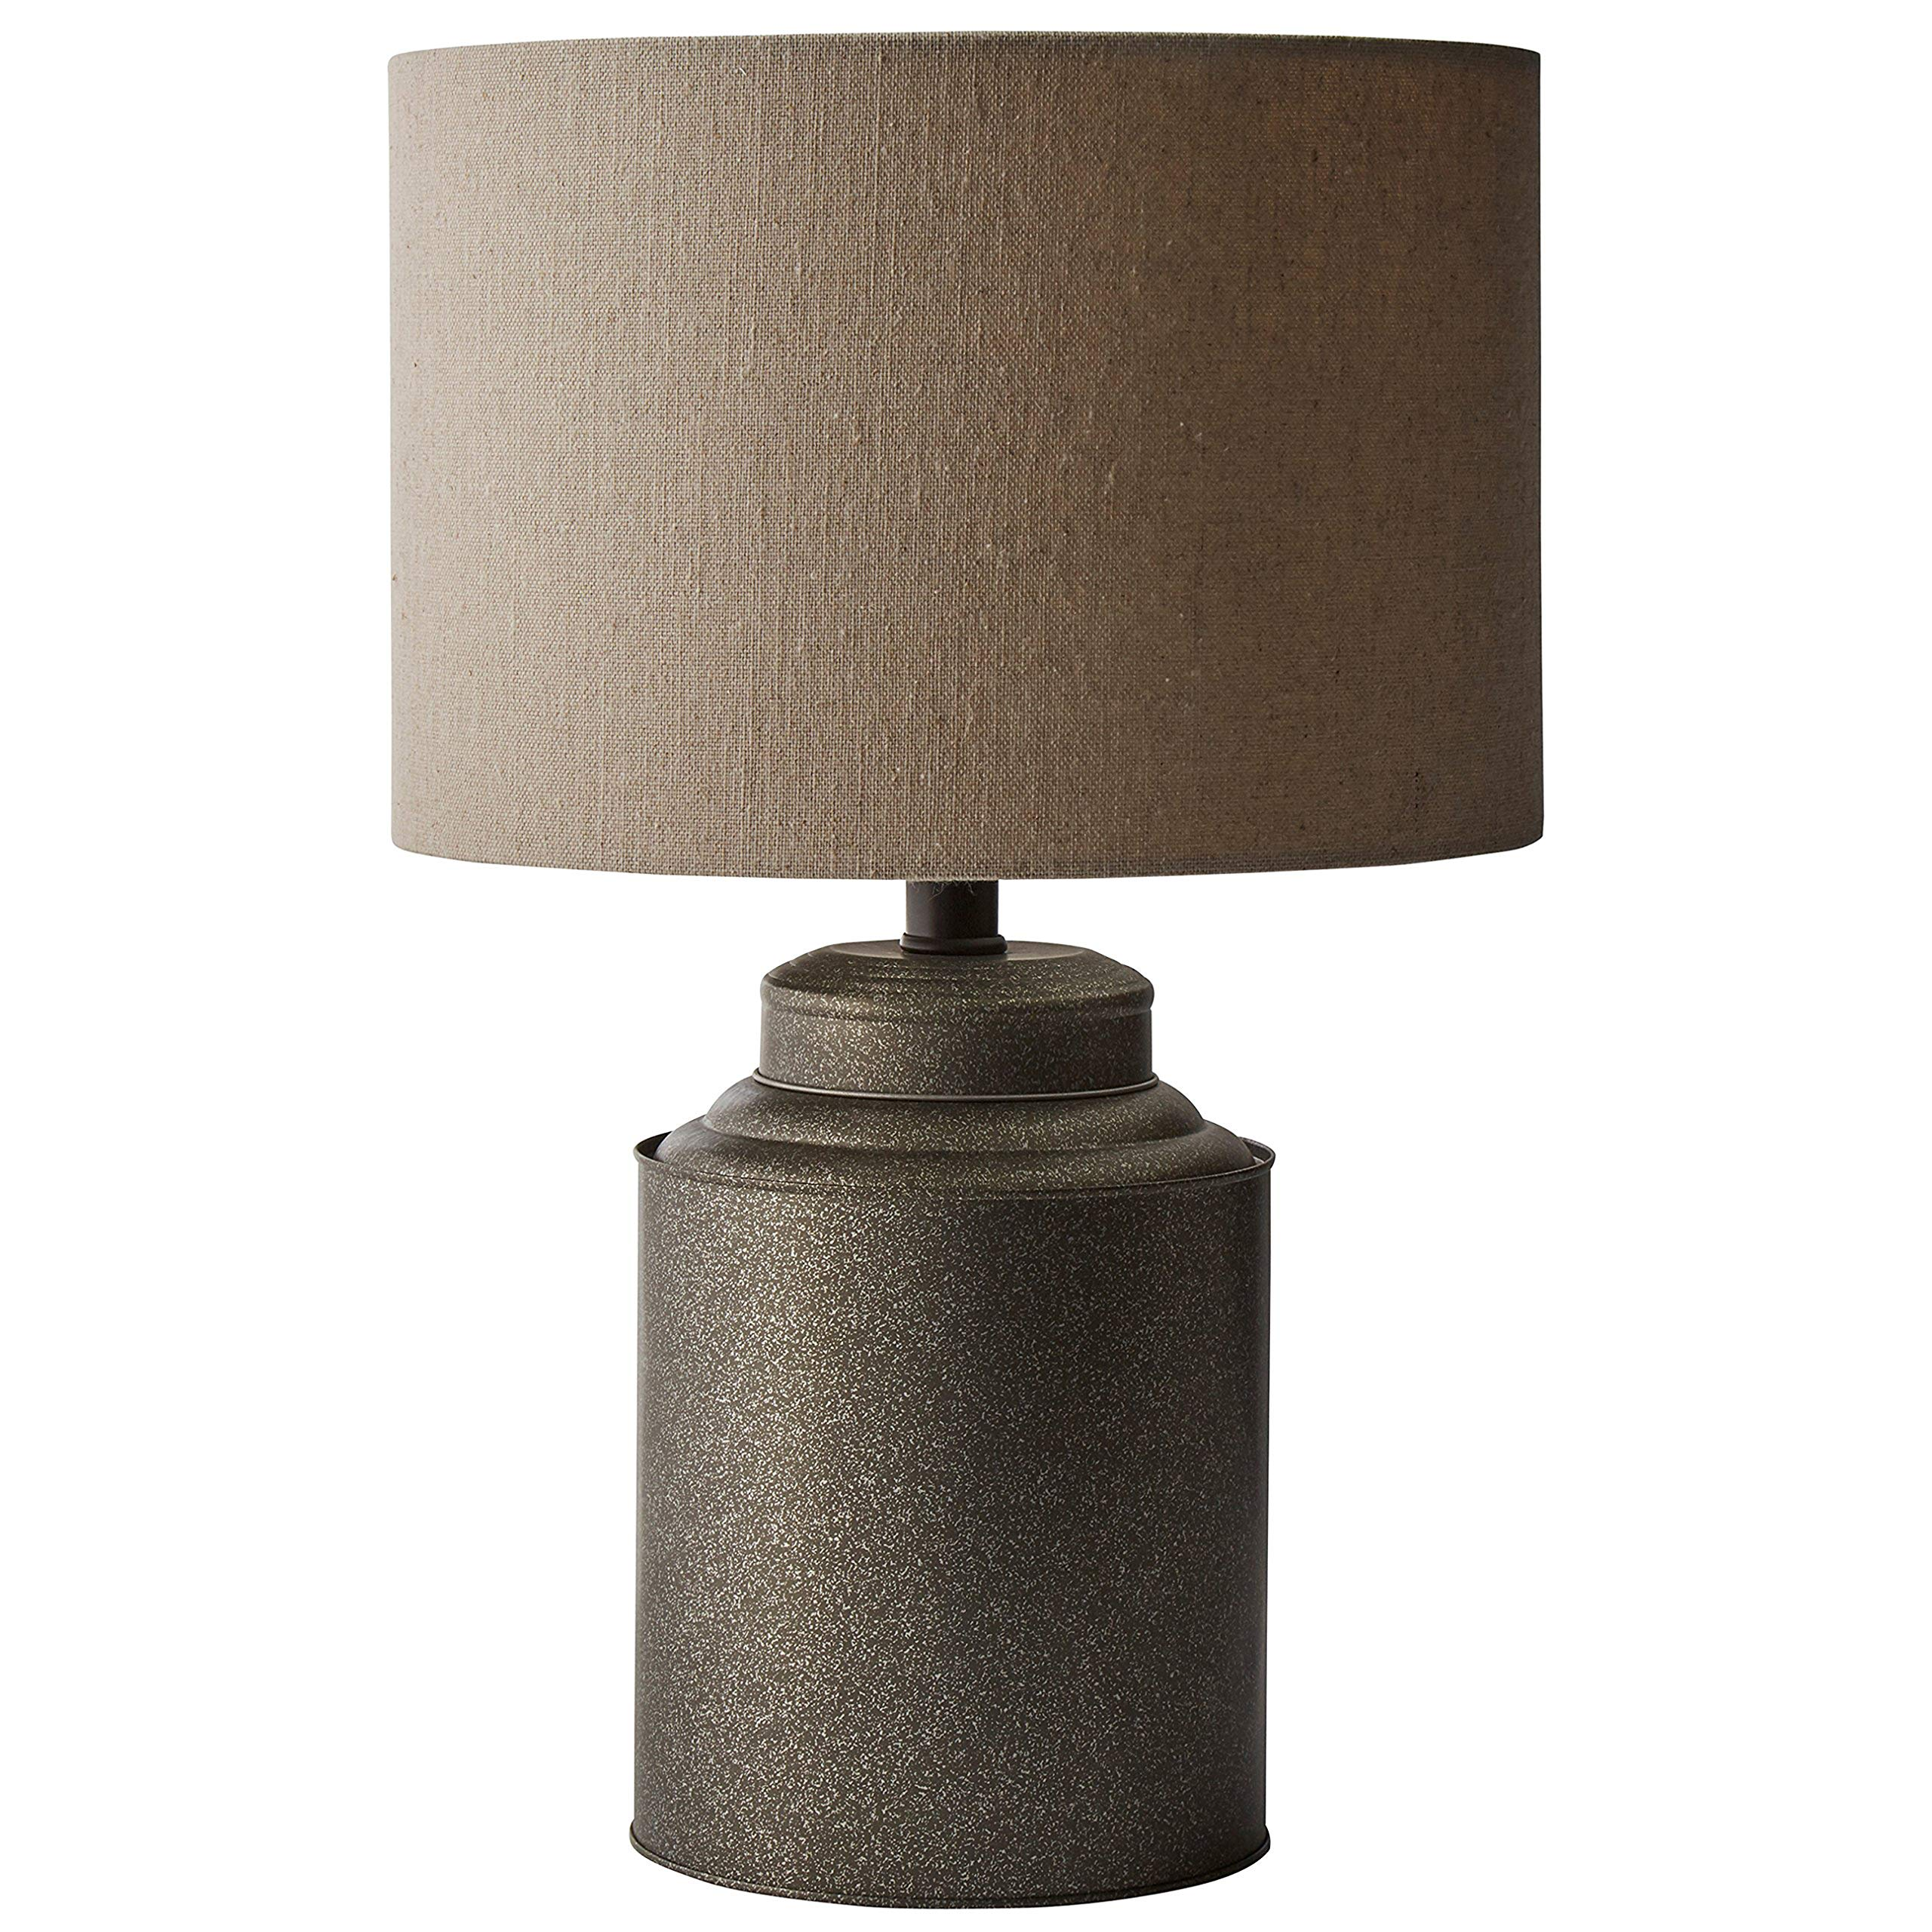 Stone & Beam Rustic Farmhouse Jug Living Room Table Lamp With LED Light Bulb and Drum Shade - 12.5 x 20 Inches, Black